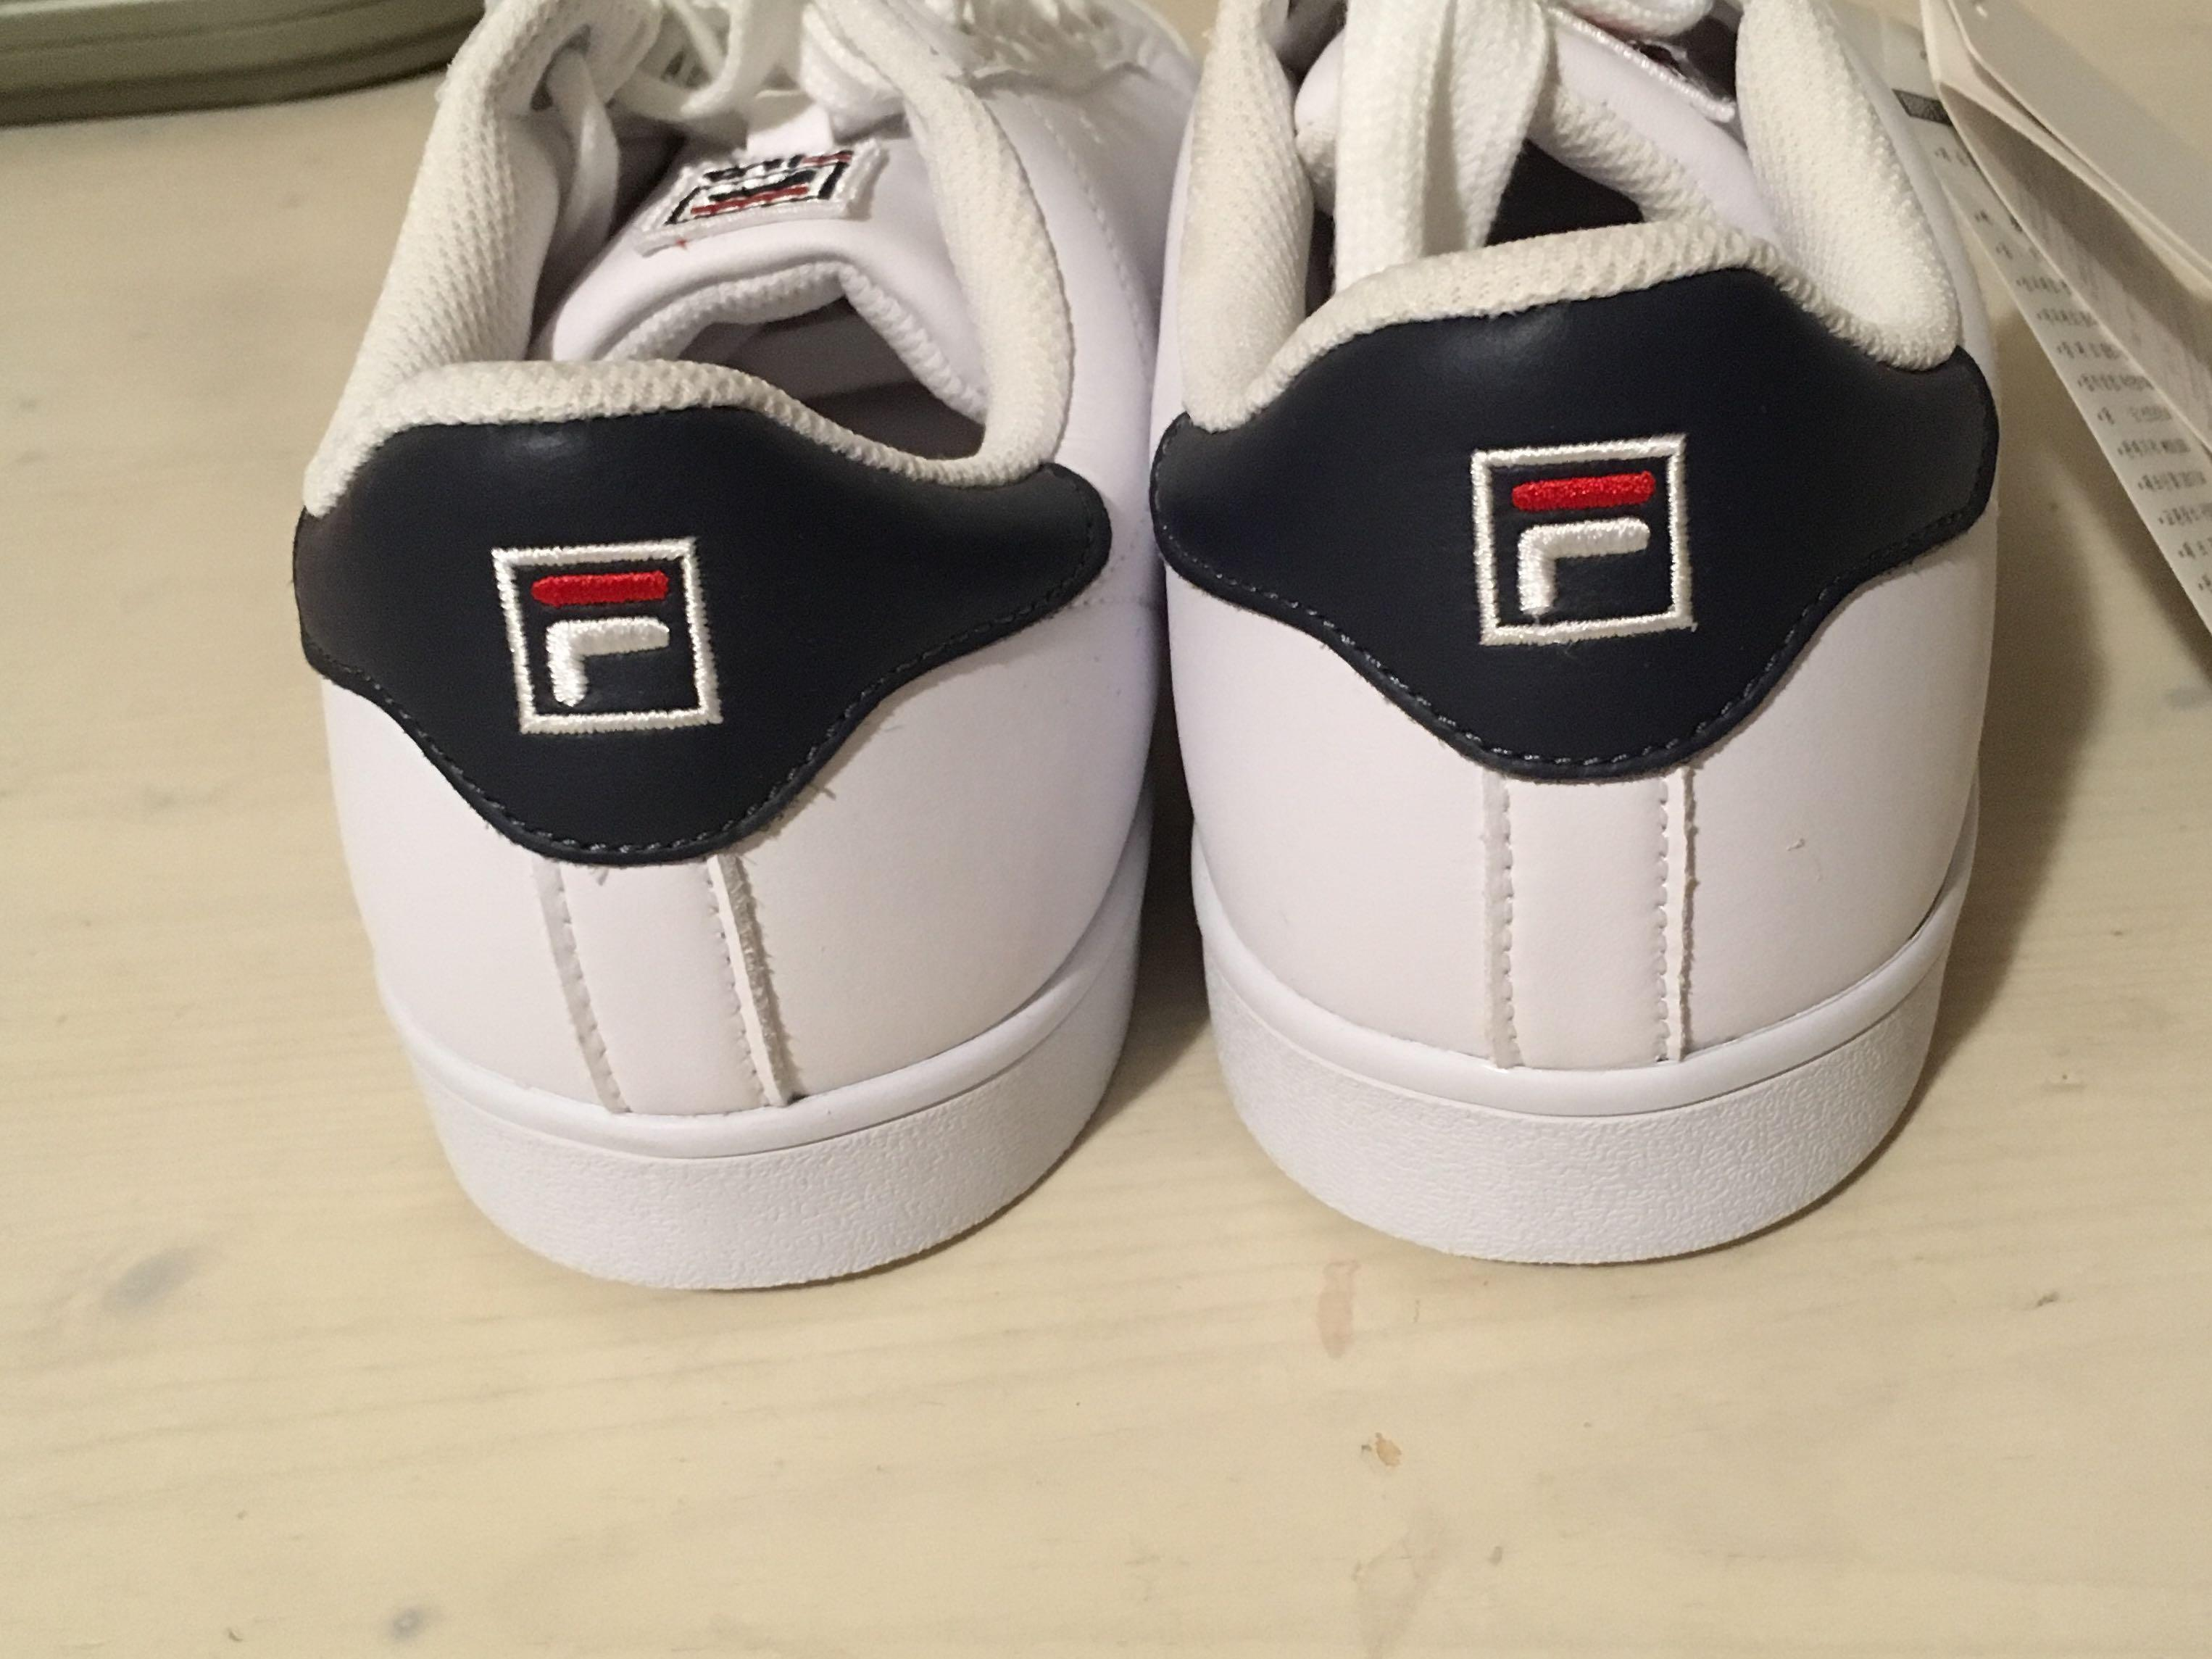 FILA COURT DELUXE TENNIS SHOES BRAND NEW WITH TAGS